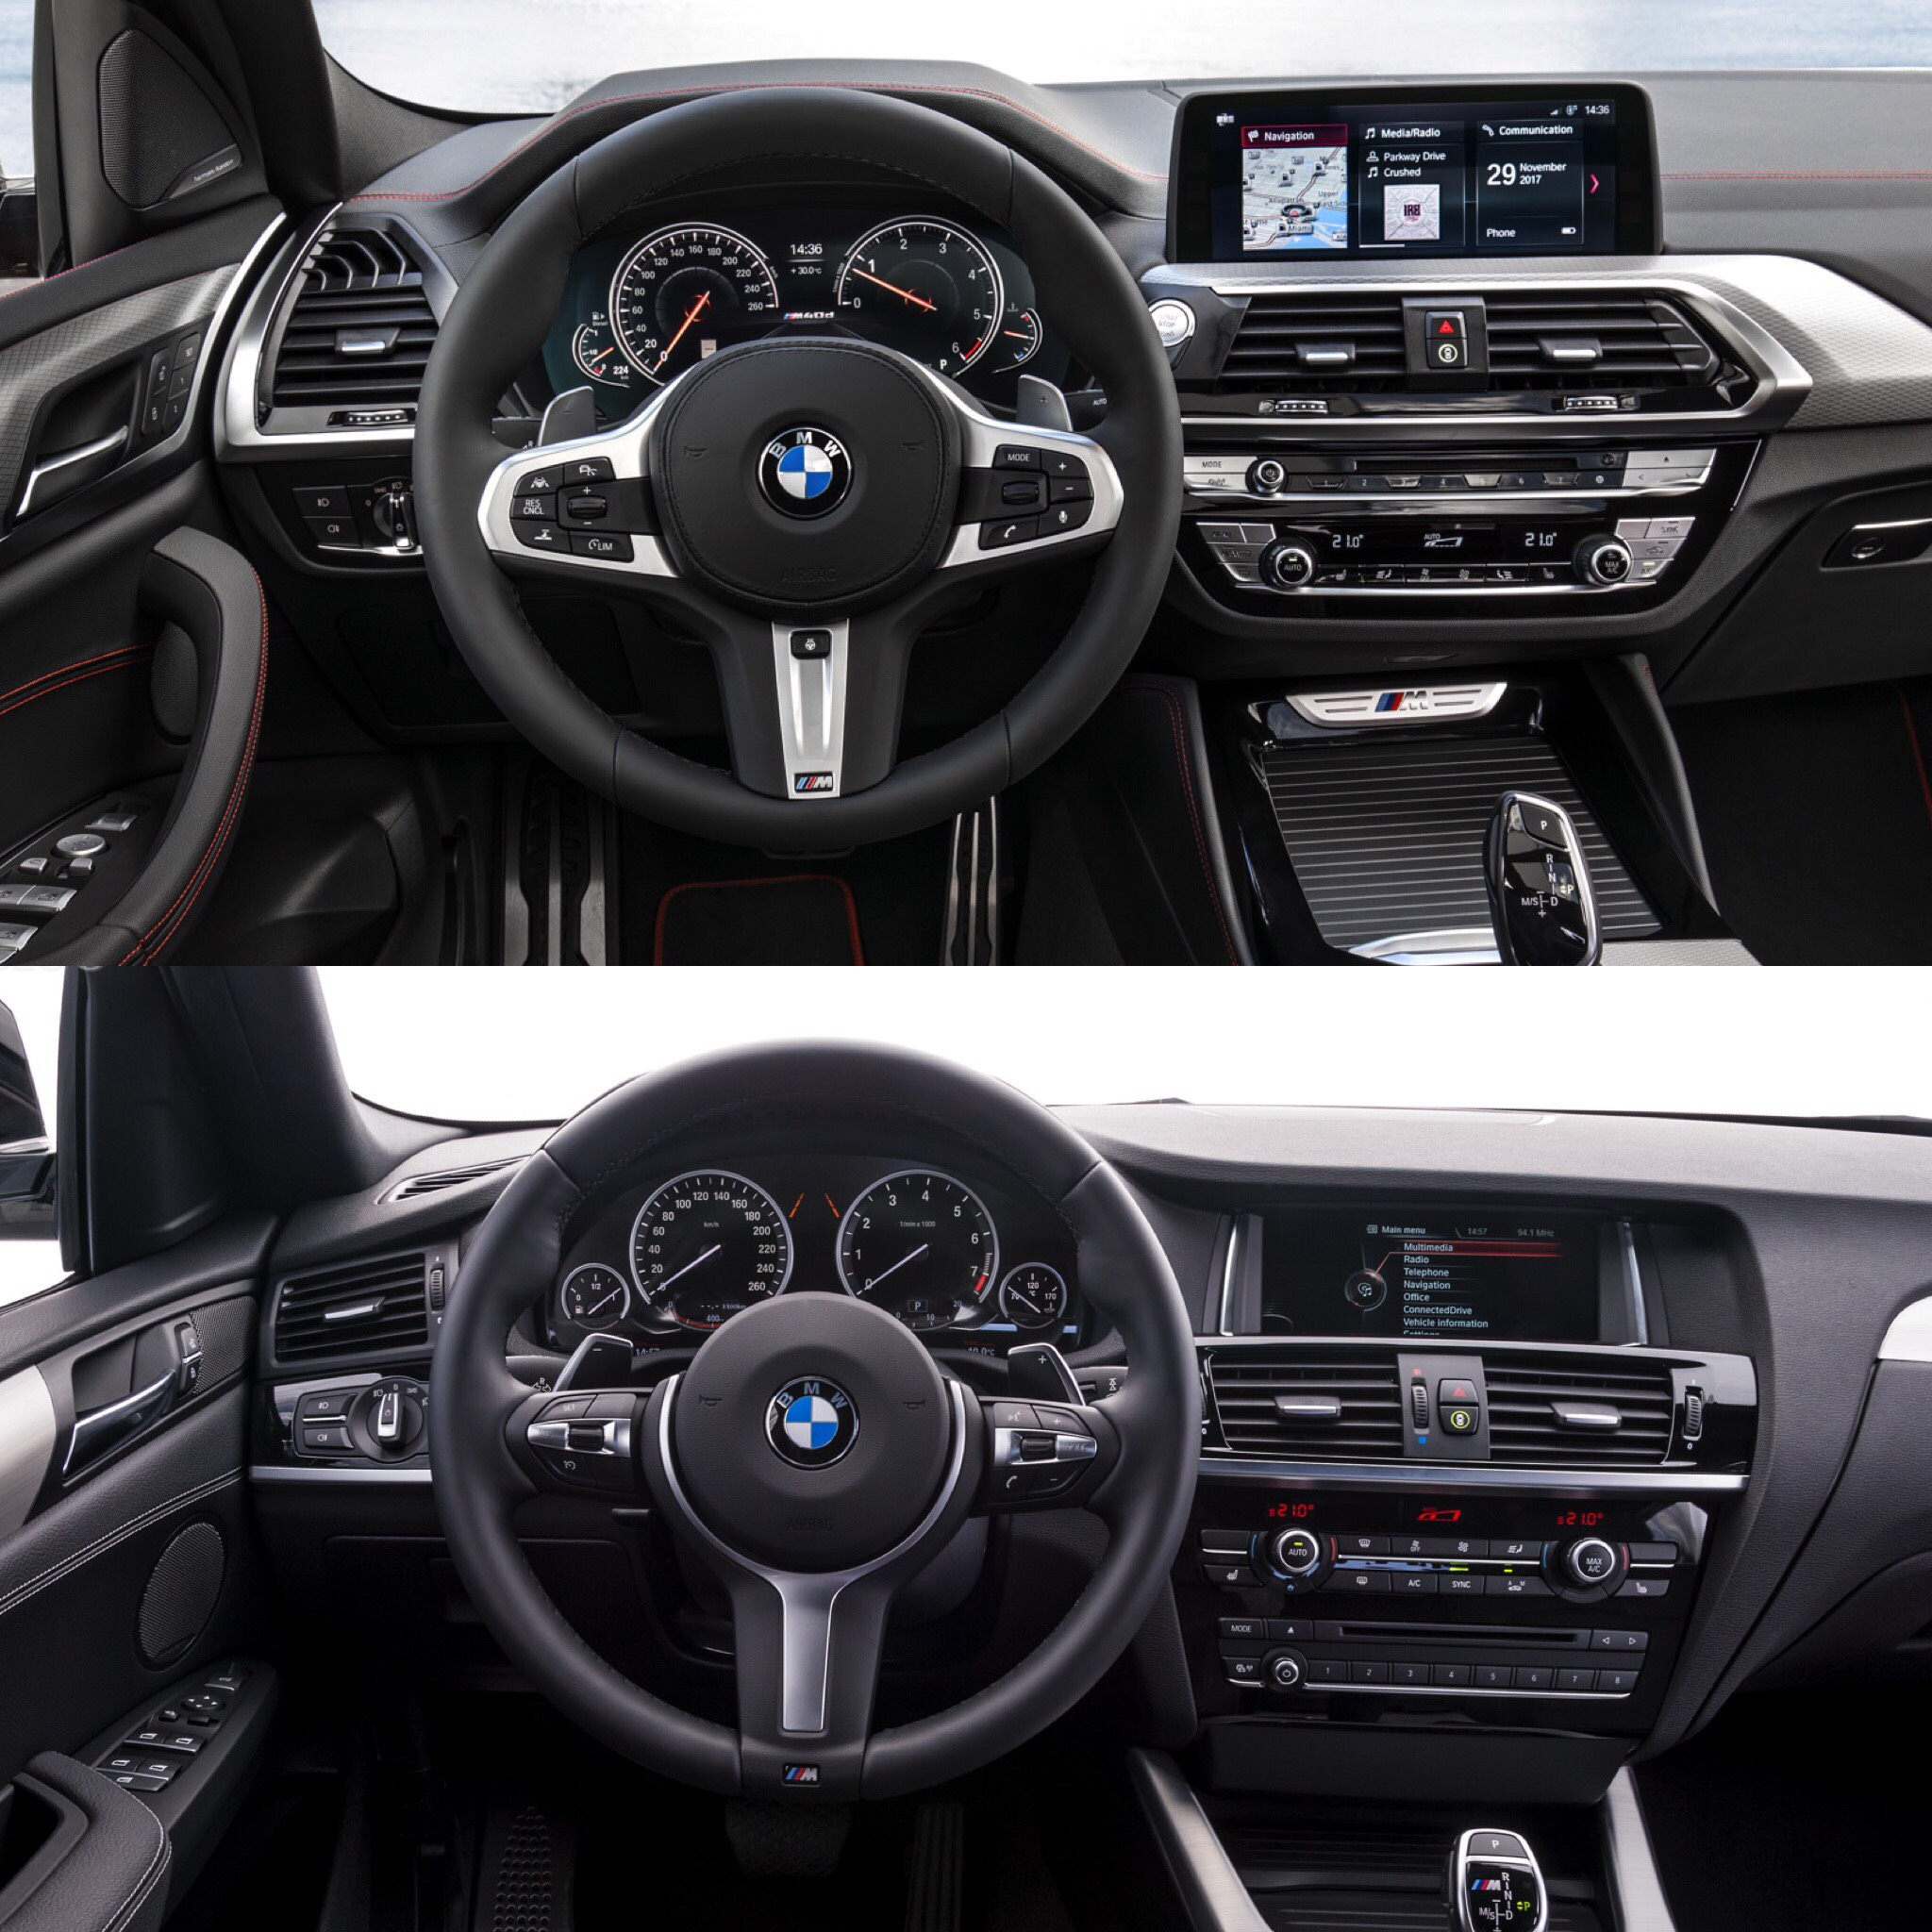 Photo Comparison: F26 BMW X4 Vs G02 BMW X4 -- Old Vs New